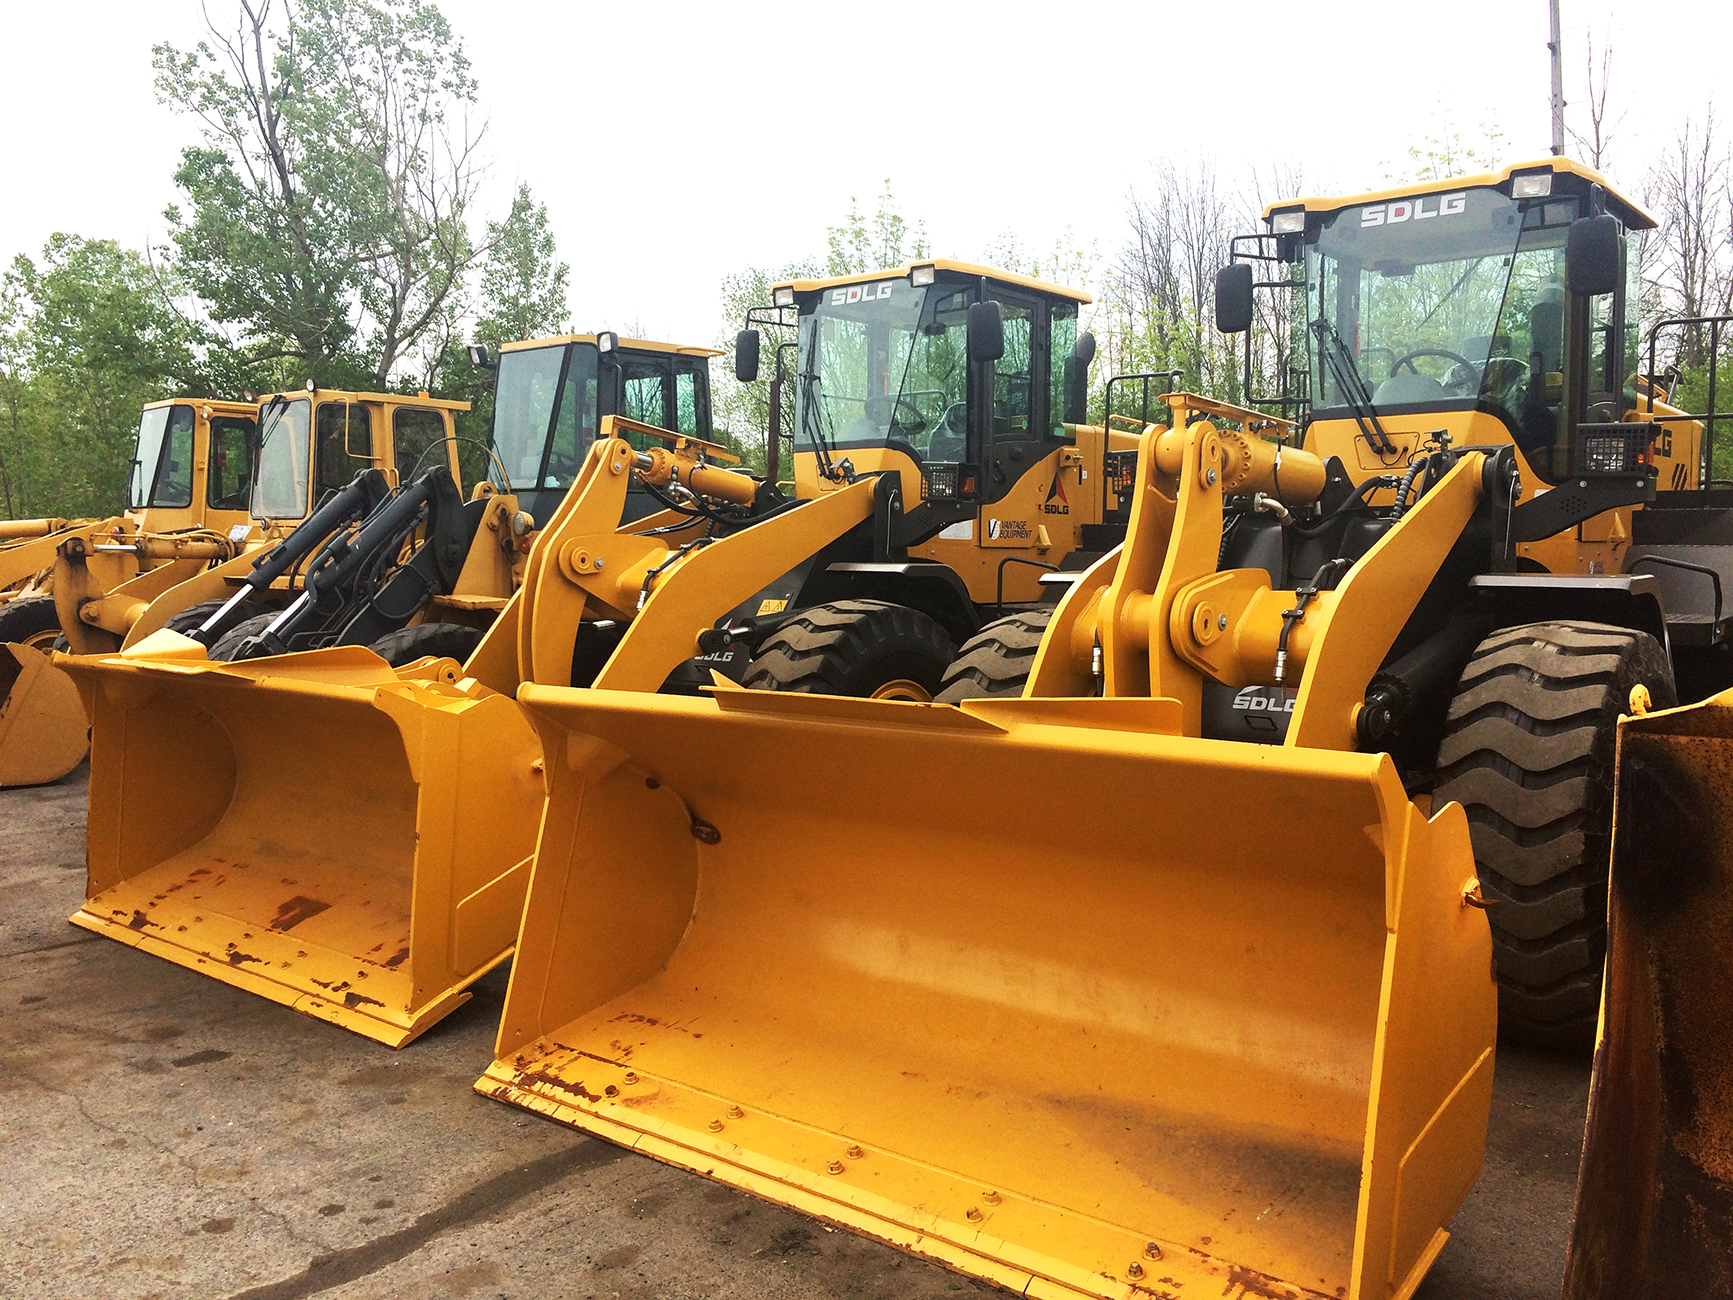 Boon & Sons chooses SDLG front end loaders for snow removal in upstate New York